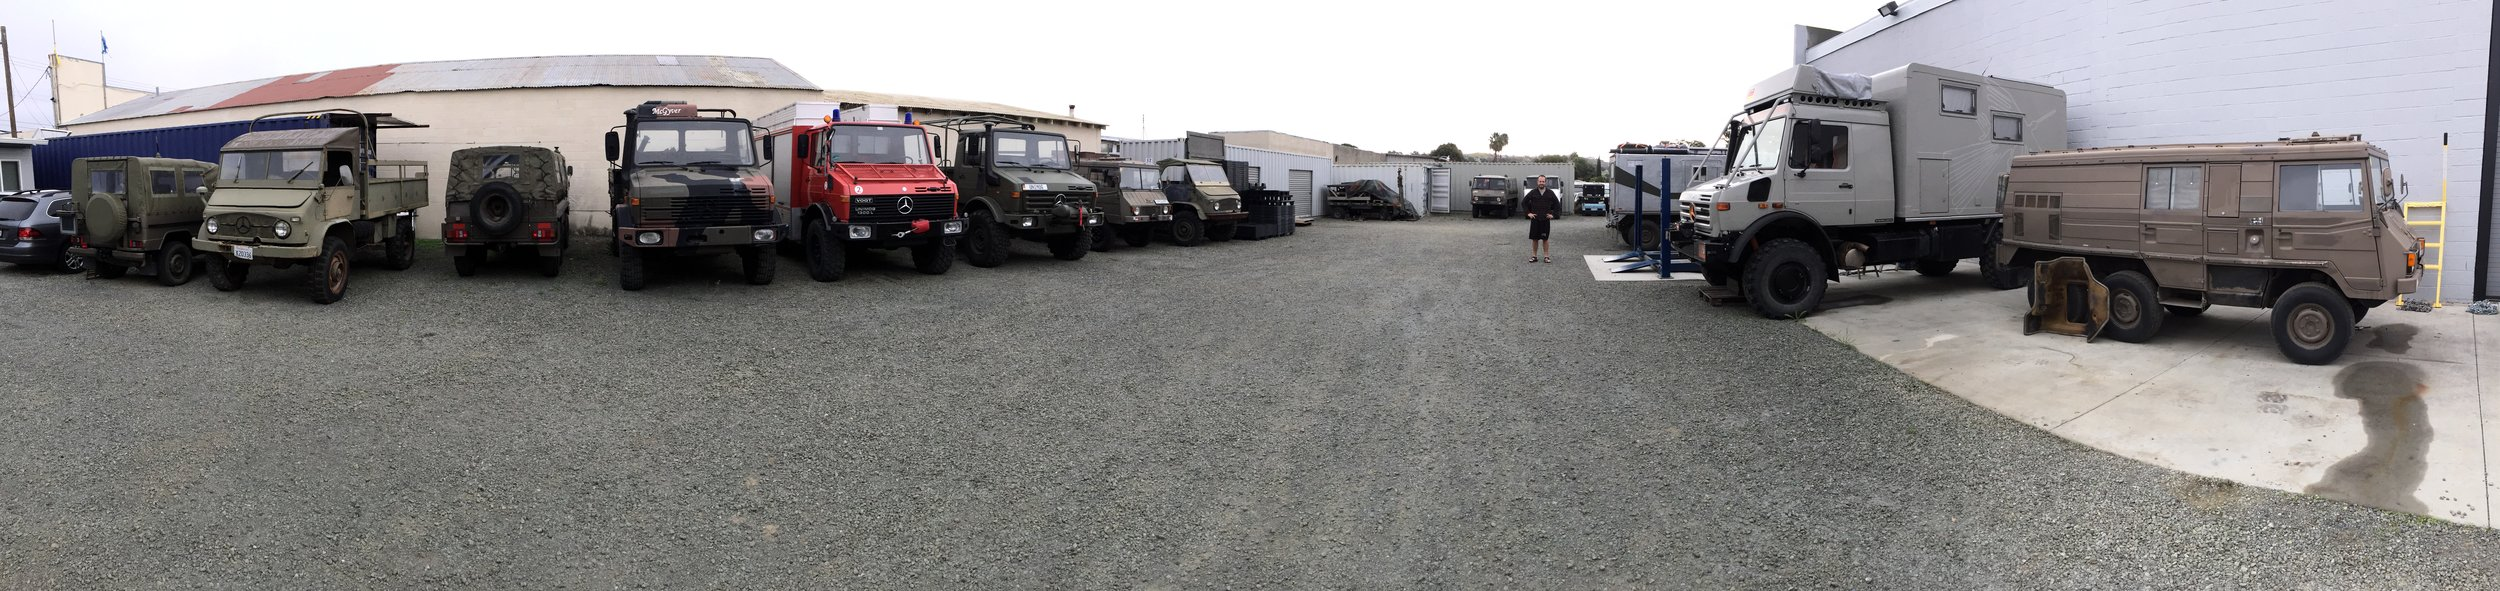 A panorama of all the rigs including Mogs spanning three decades, original Steyr-Puch G Wagons, and a handful of 4x4 and 6x6 Pinzgauers. It was beautiful. We felt normal!